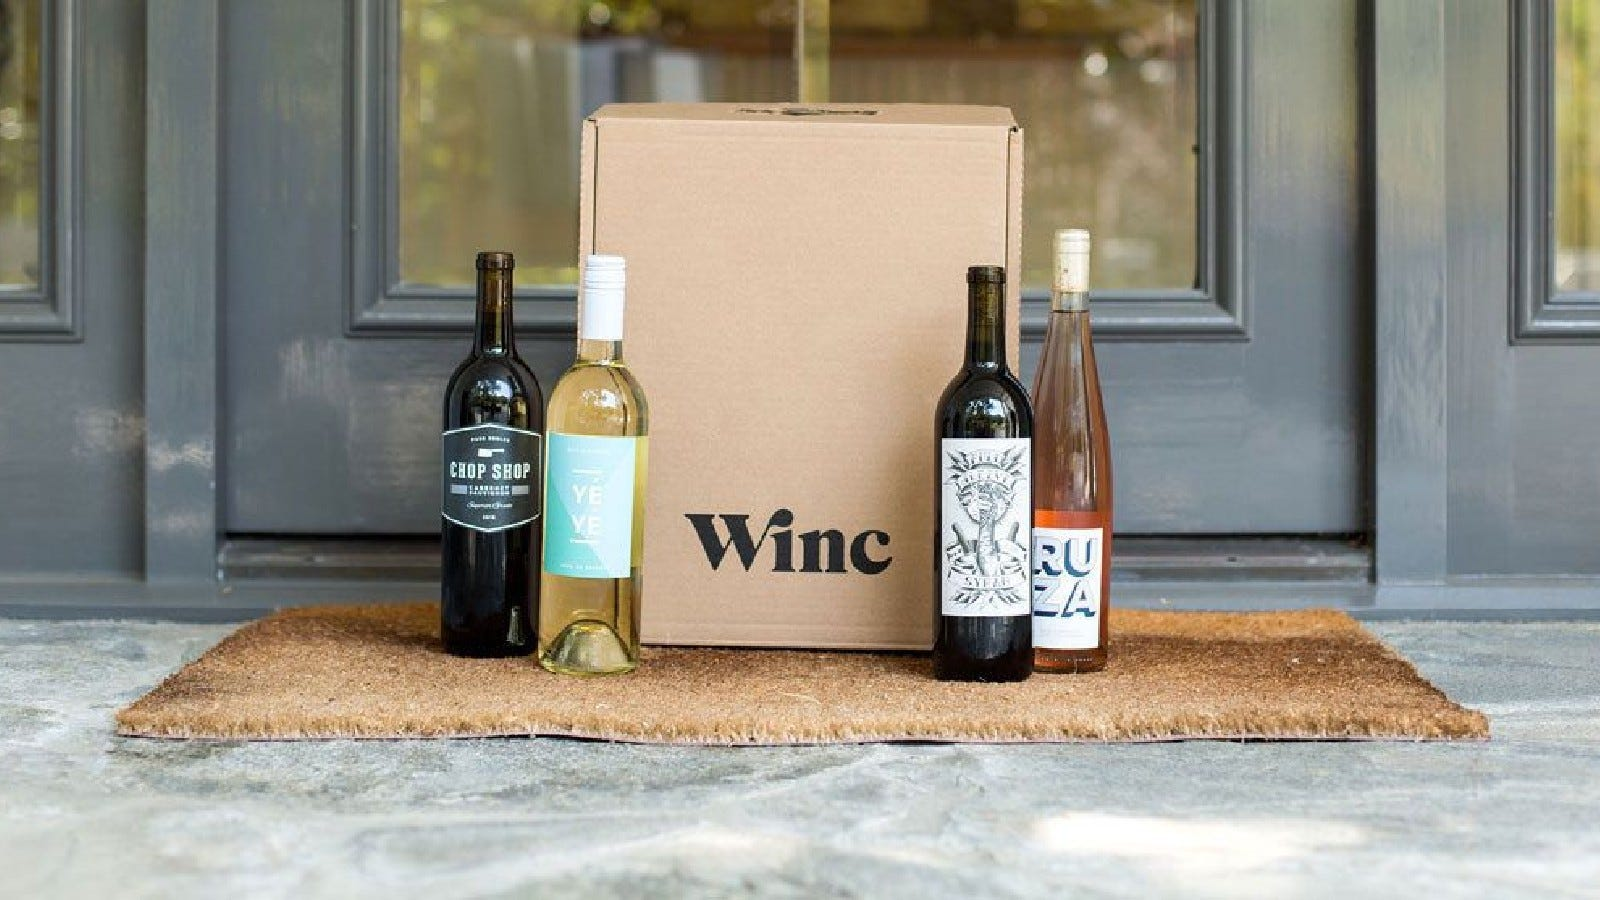 Four bottles of wine next to a Winc box sitting on a porch.